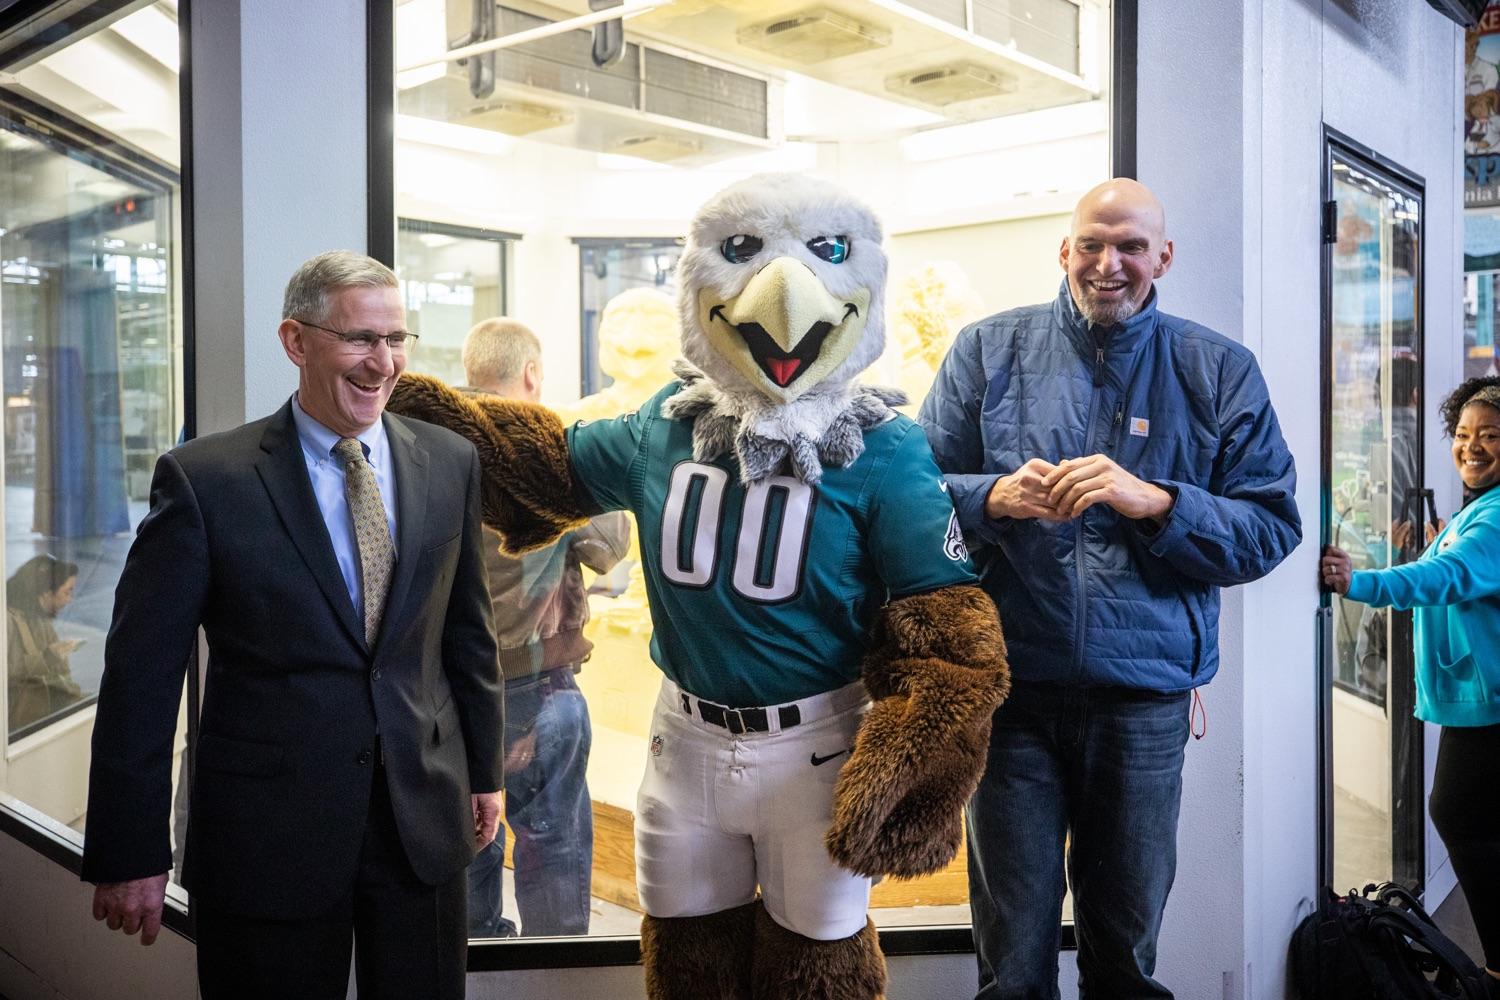 "<a href=""http://filesource.abacast.com/commonwealthofpa/photo/17646_agric_butter_sculpture_dz_022.jpg"" target=""_blank"">⇣ Download Photo<br></a>Philadelphia Eagles Swoop, Lt. Governor John Fetterman,  and Secretary of Agriculture Russell Redding at the Pennsylvania Farm Show butter sculpture.  Lt. Governor John Fetterman and Secretary of Agriculture Russell Redding today unveiled the 2020 Pennsylvania Farm Show butter sculpture, carved from a half-ton of butter depicting three of Pennsylvanias beloved professional sports mascots: Philadelphia Flyers Gritty, Philadelphia Eagles Swoop, and Pittsburgh Steelers Steely McBeam celebrating with a spread of Pennsylvania dairy products. The sculpture, a long-time Farm Show staple, encourages Pennsylvanians to be a fan of Pennsylvania dairy and give a cheer to the more than 6,200 dairy farmers in the commonwealth.  Harrisburg, PA  January 2, 2020"